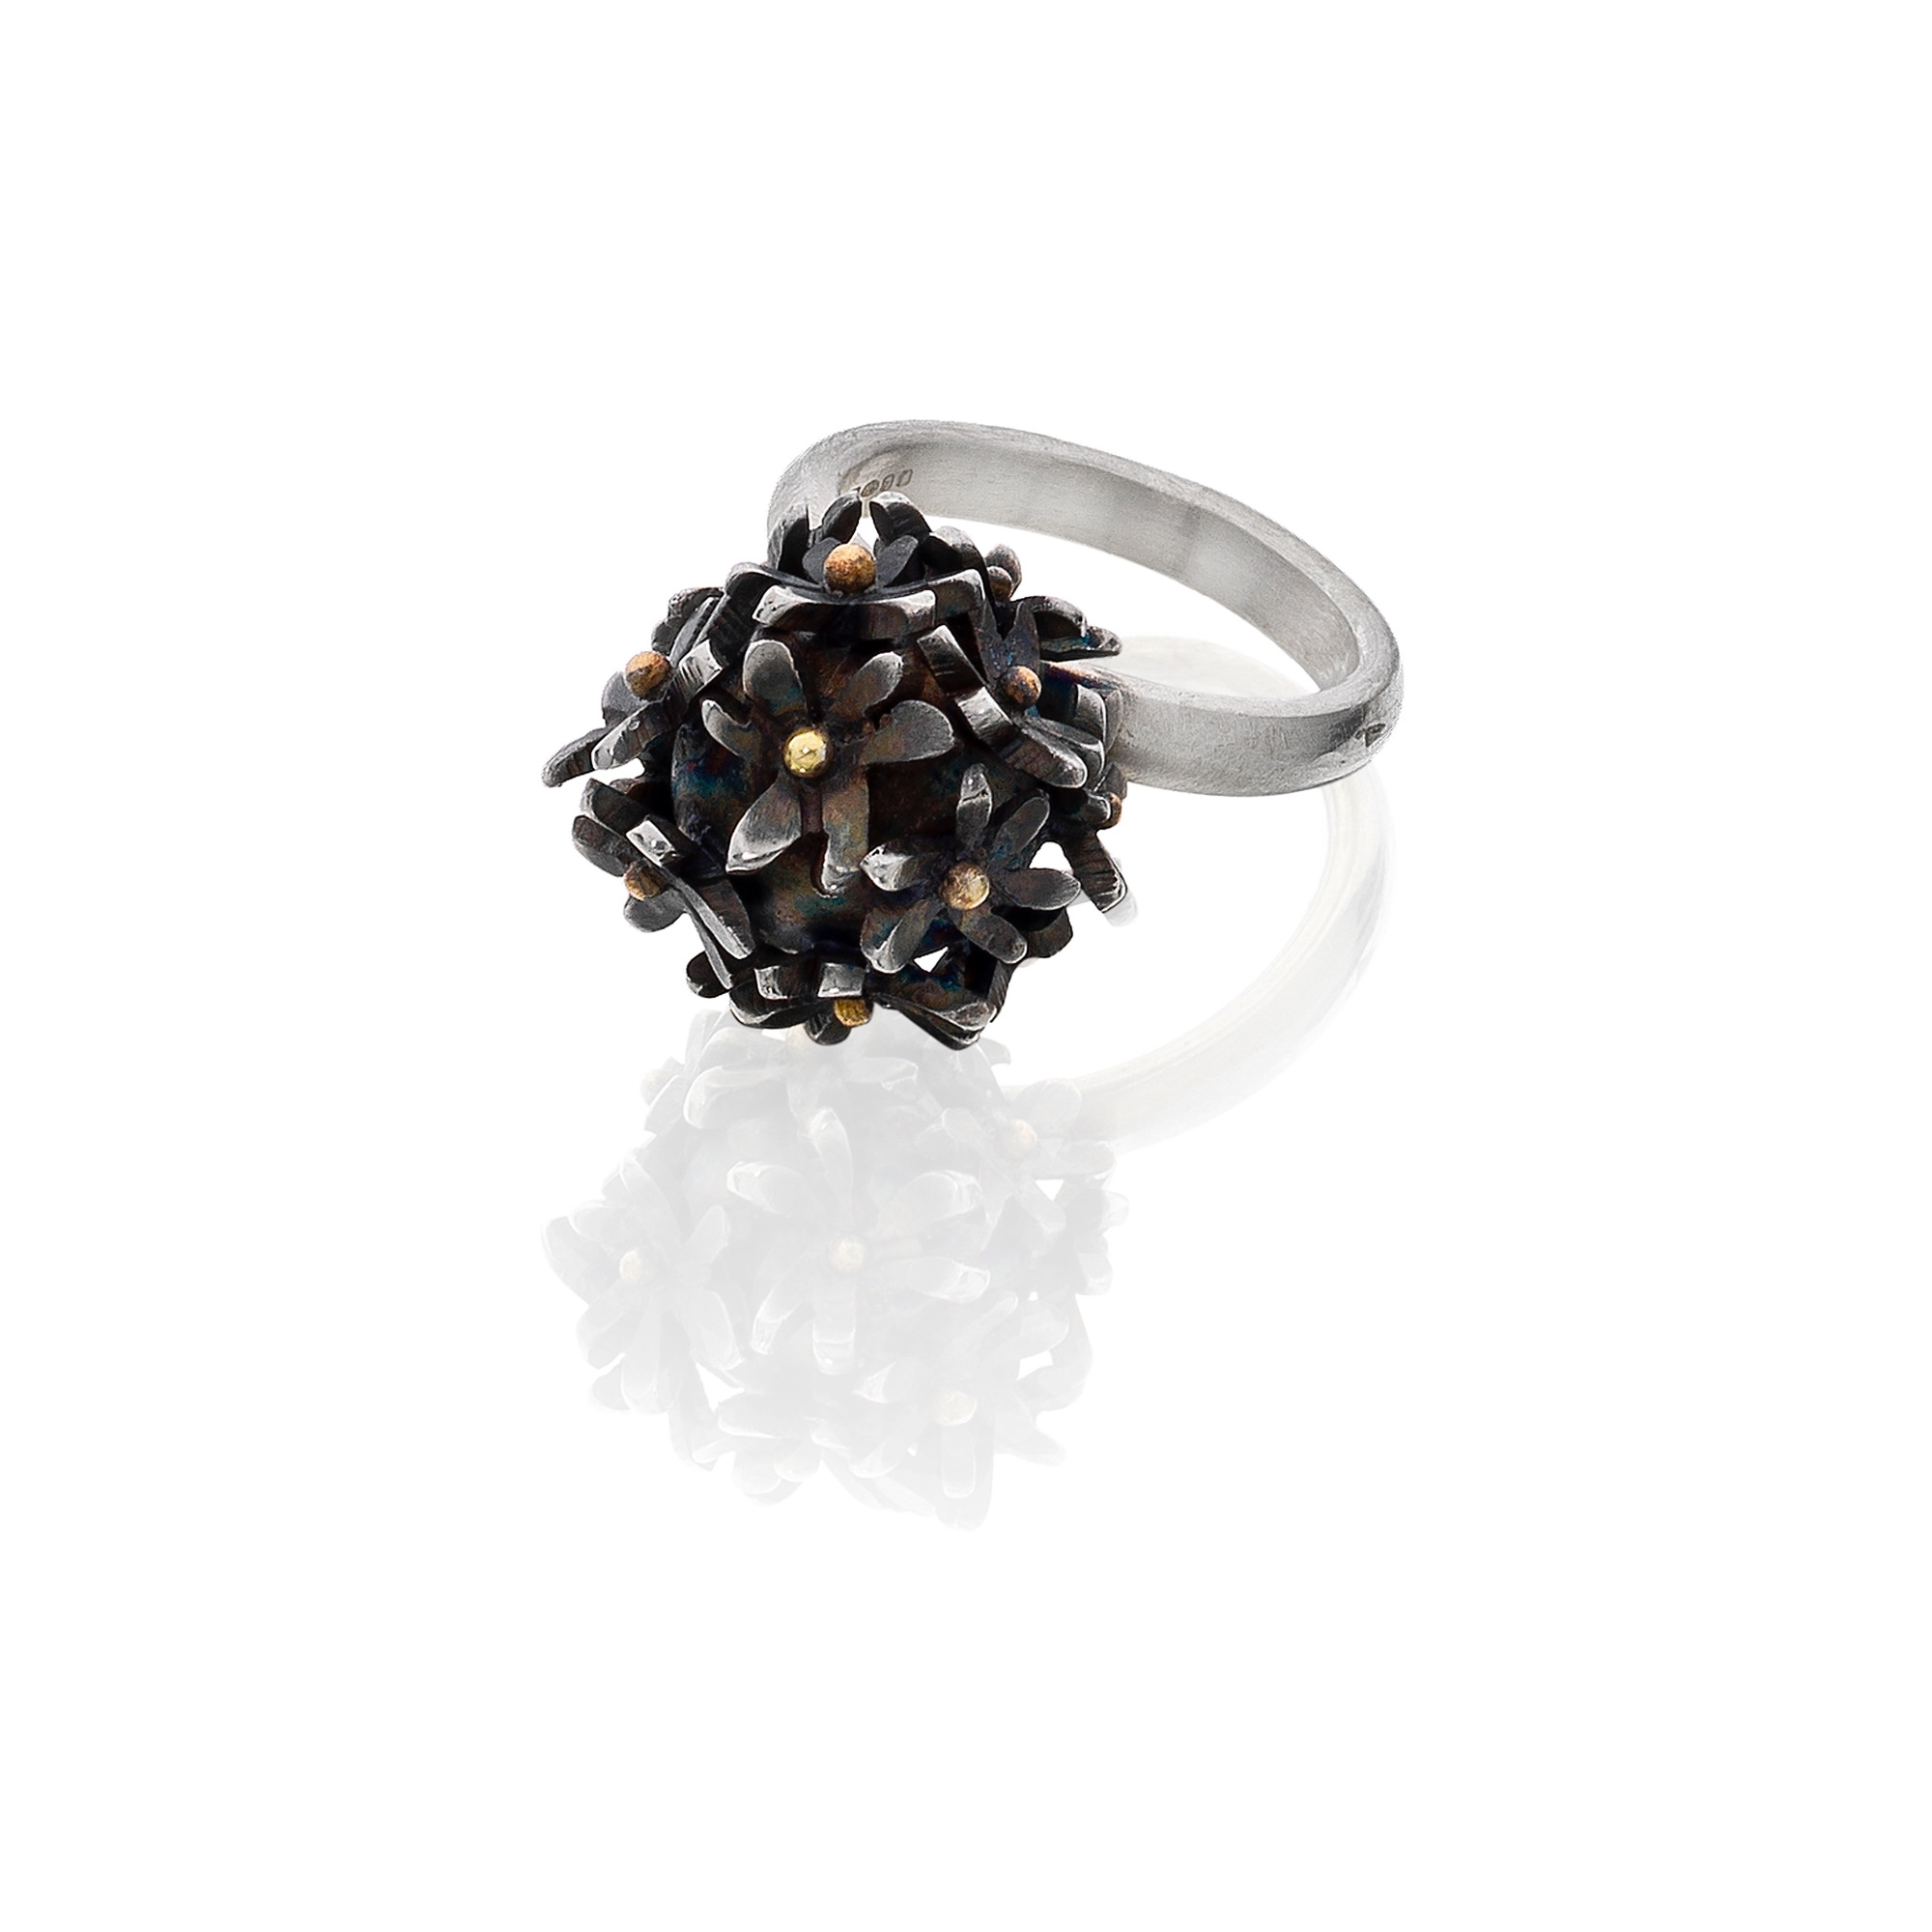 cathy-newell-price-flower-bomb-ring-72dpi